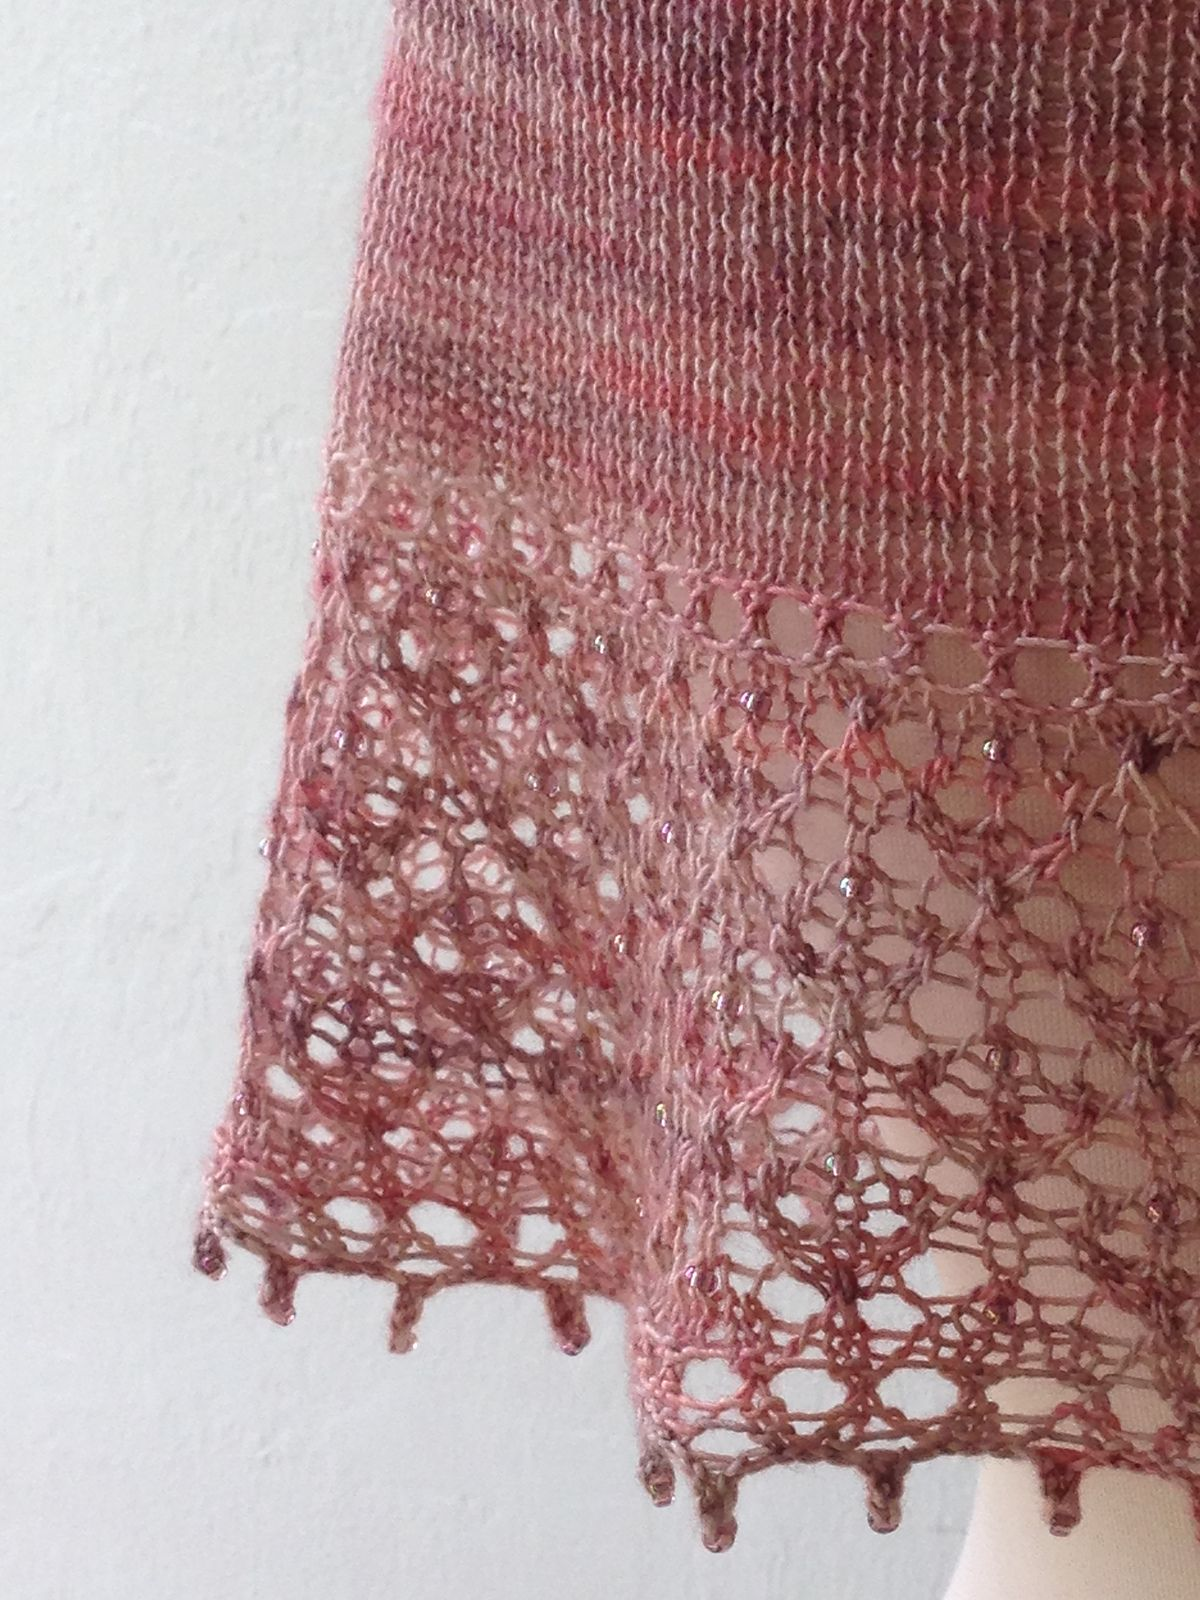 Ravelry: gulfcoast57's LOVE IN A MIST